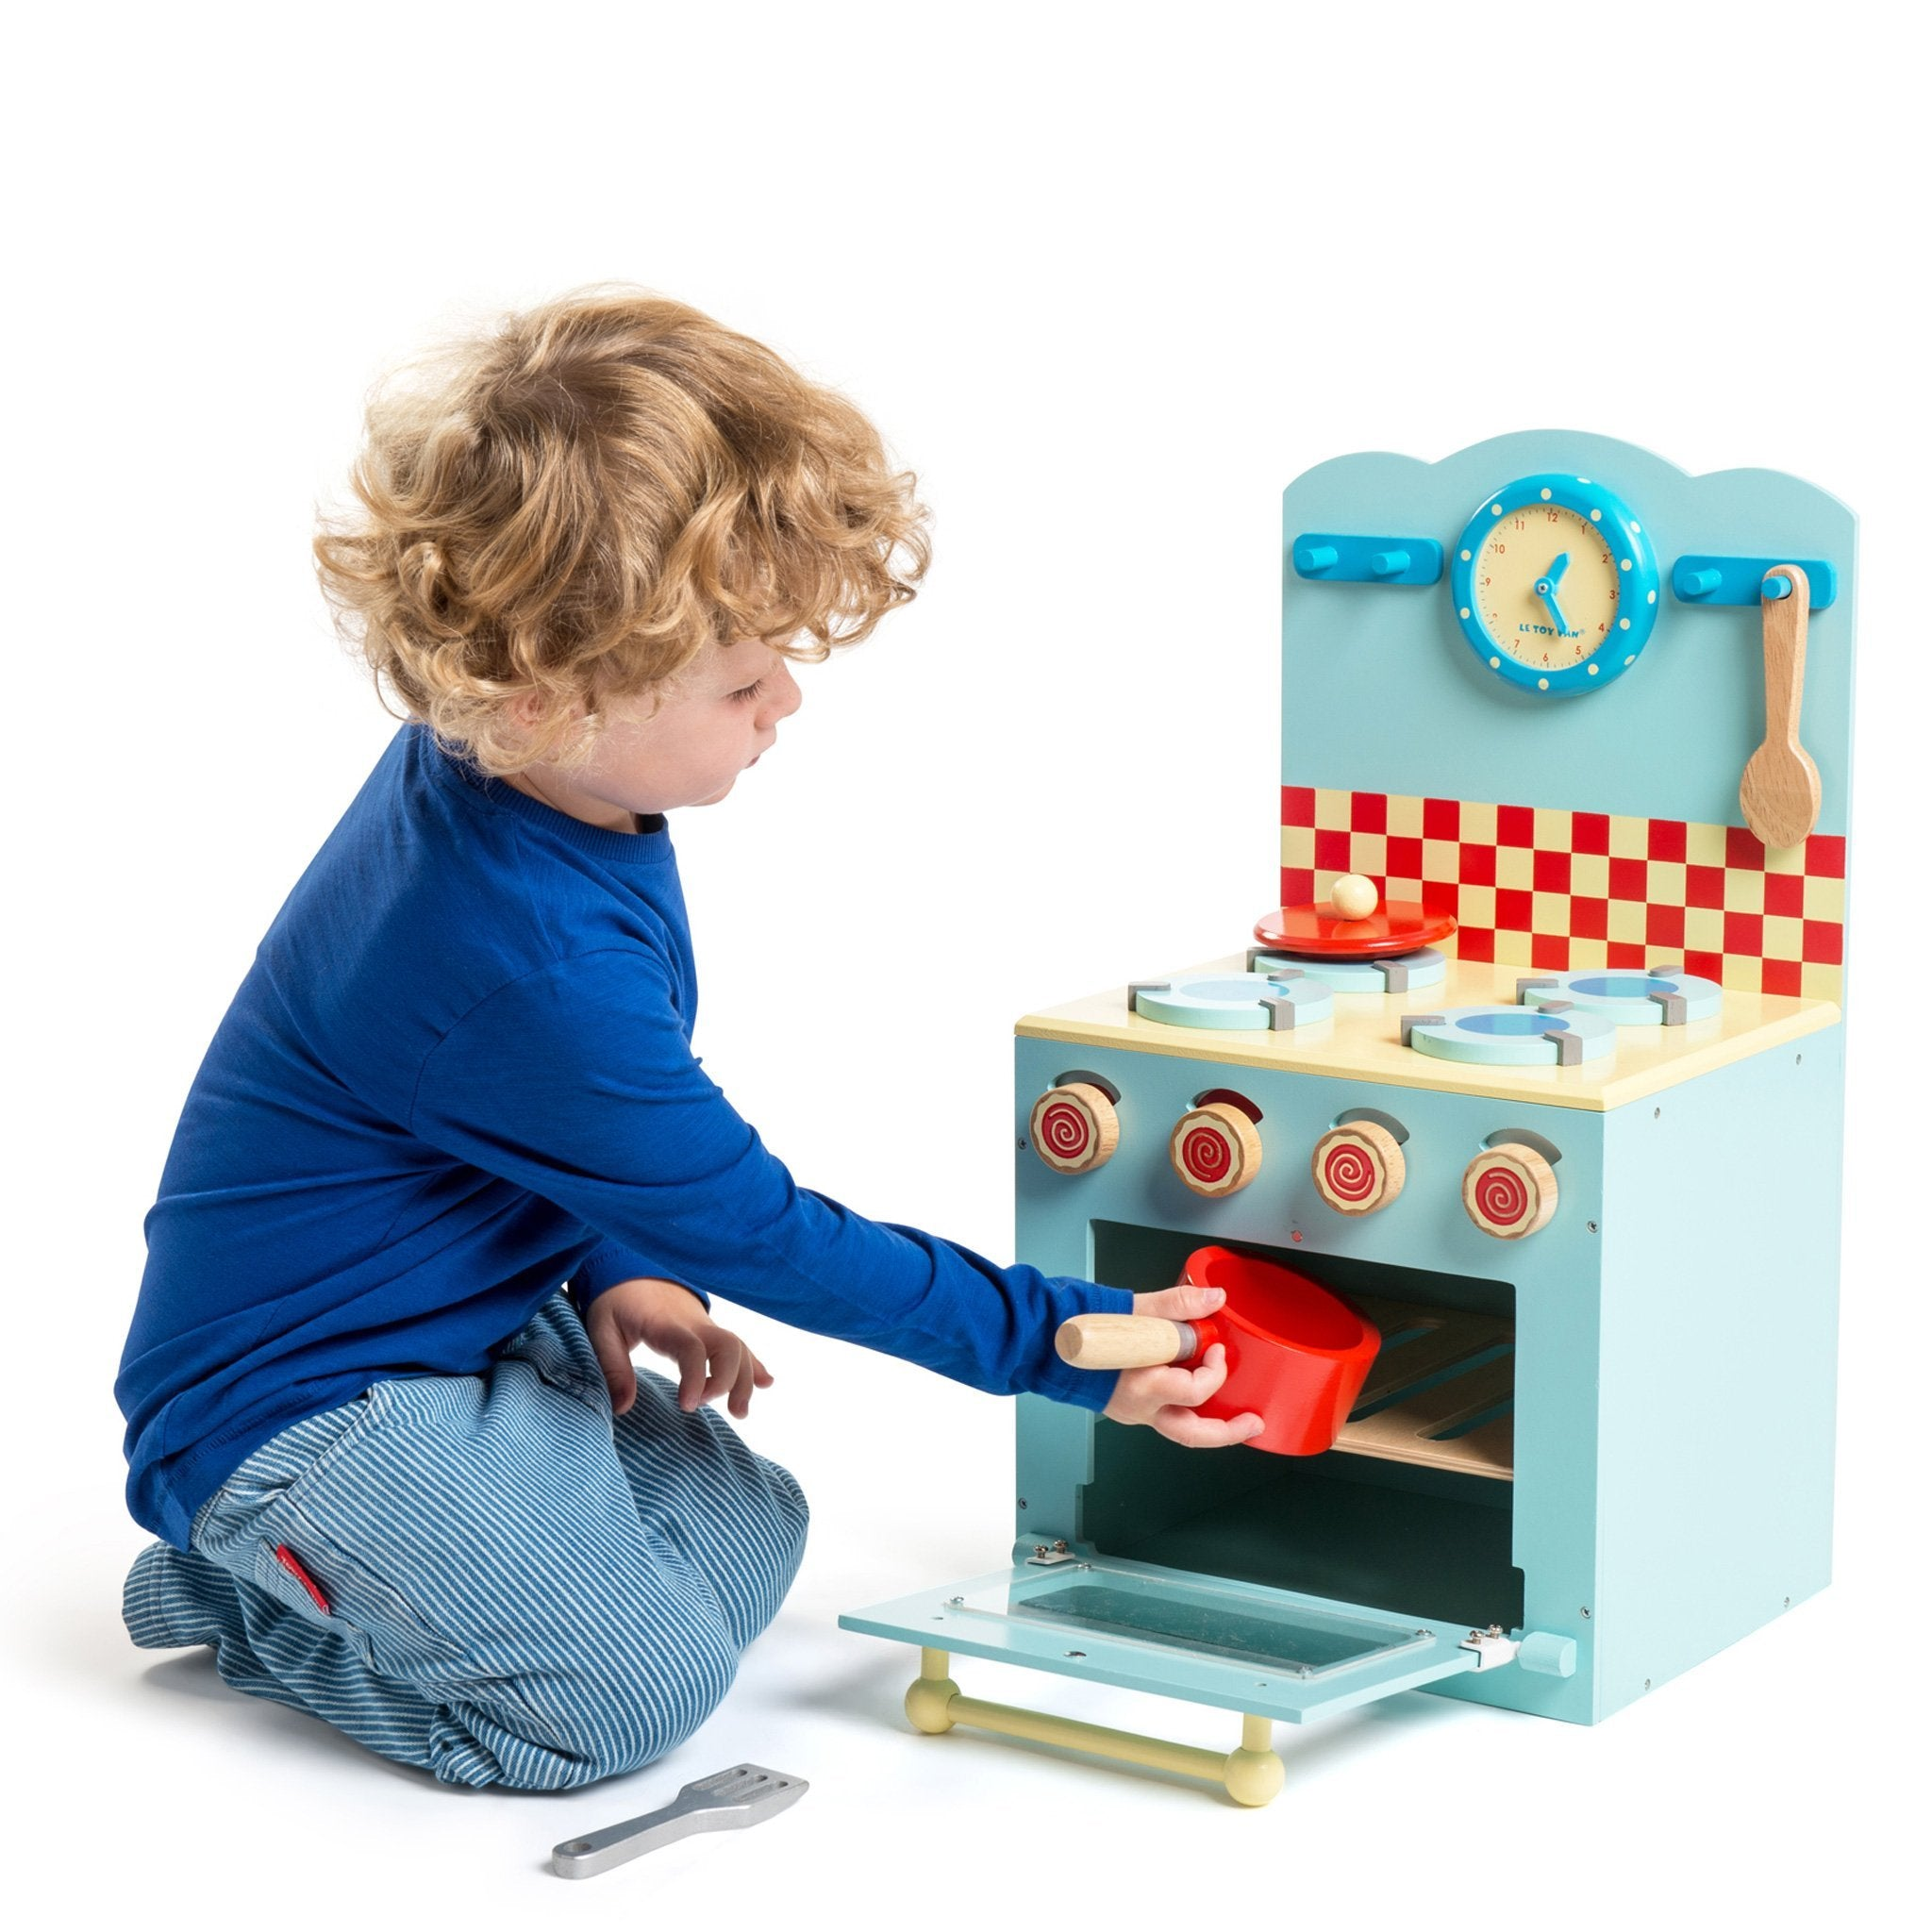 Le Toy Van Blue Oven and Hob Le Toy Van Toy Kitchens & Play Food at Little Earth Nest Eco Shop